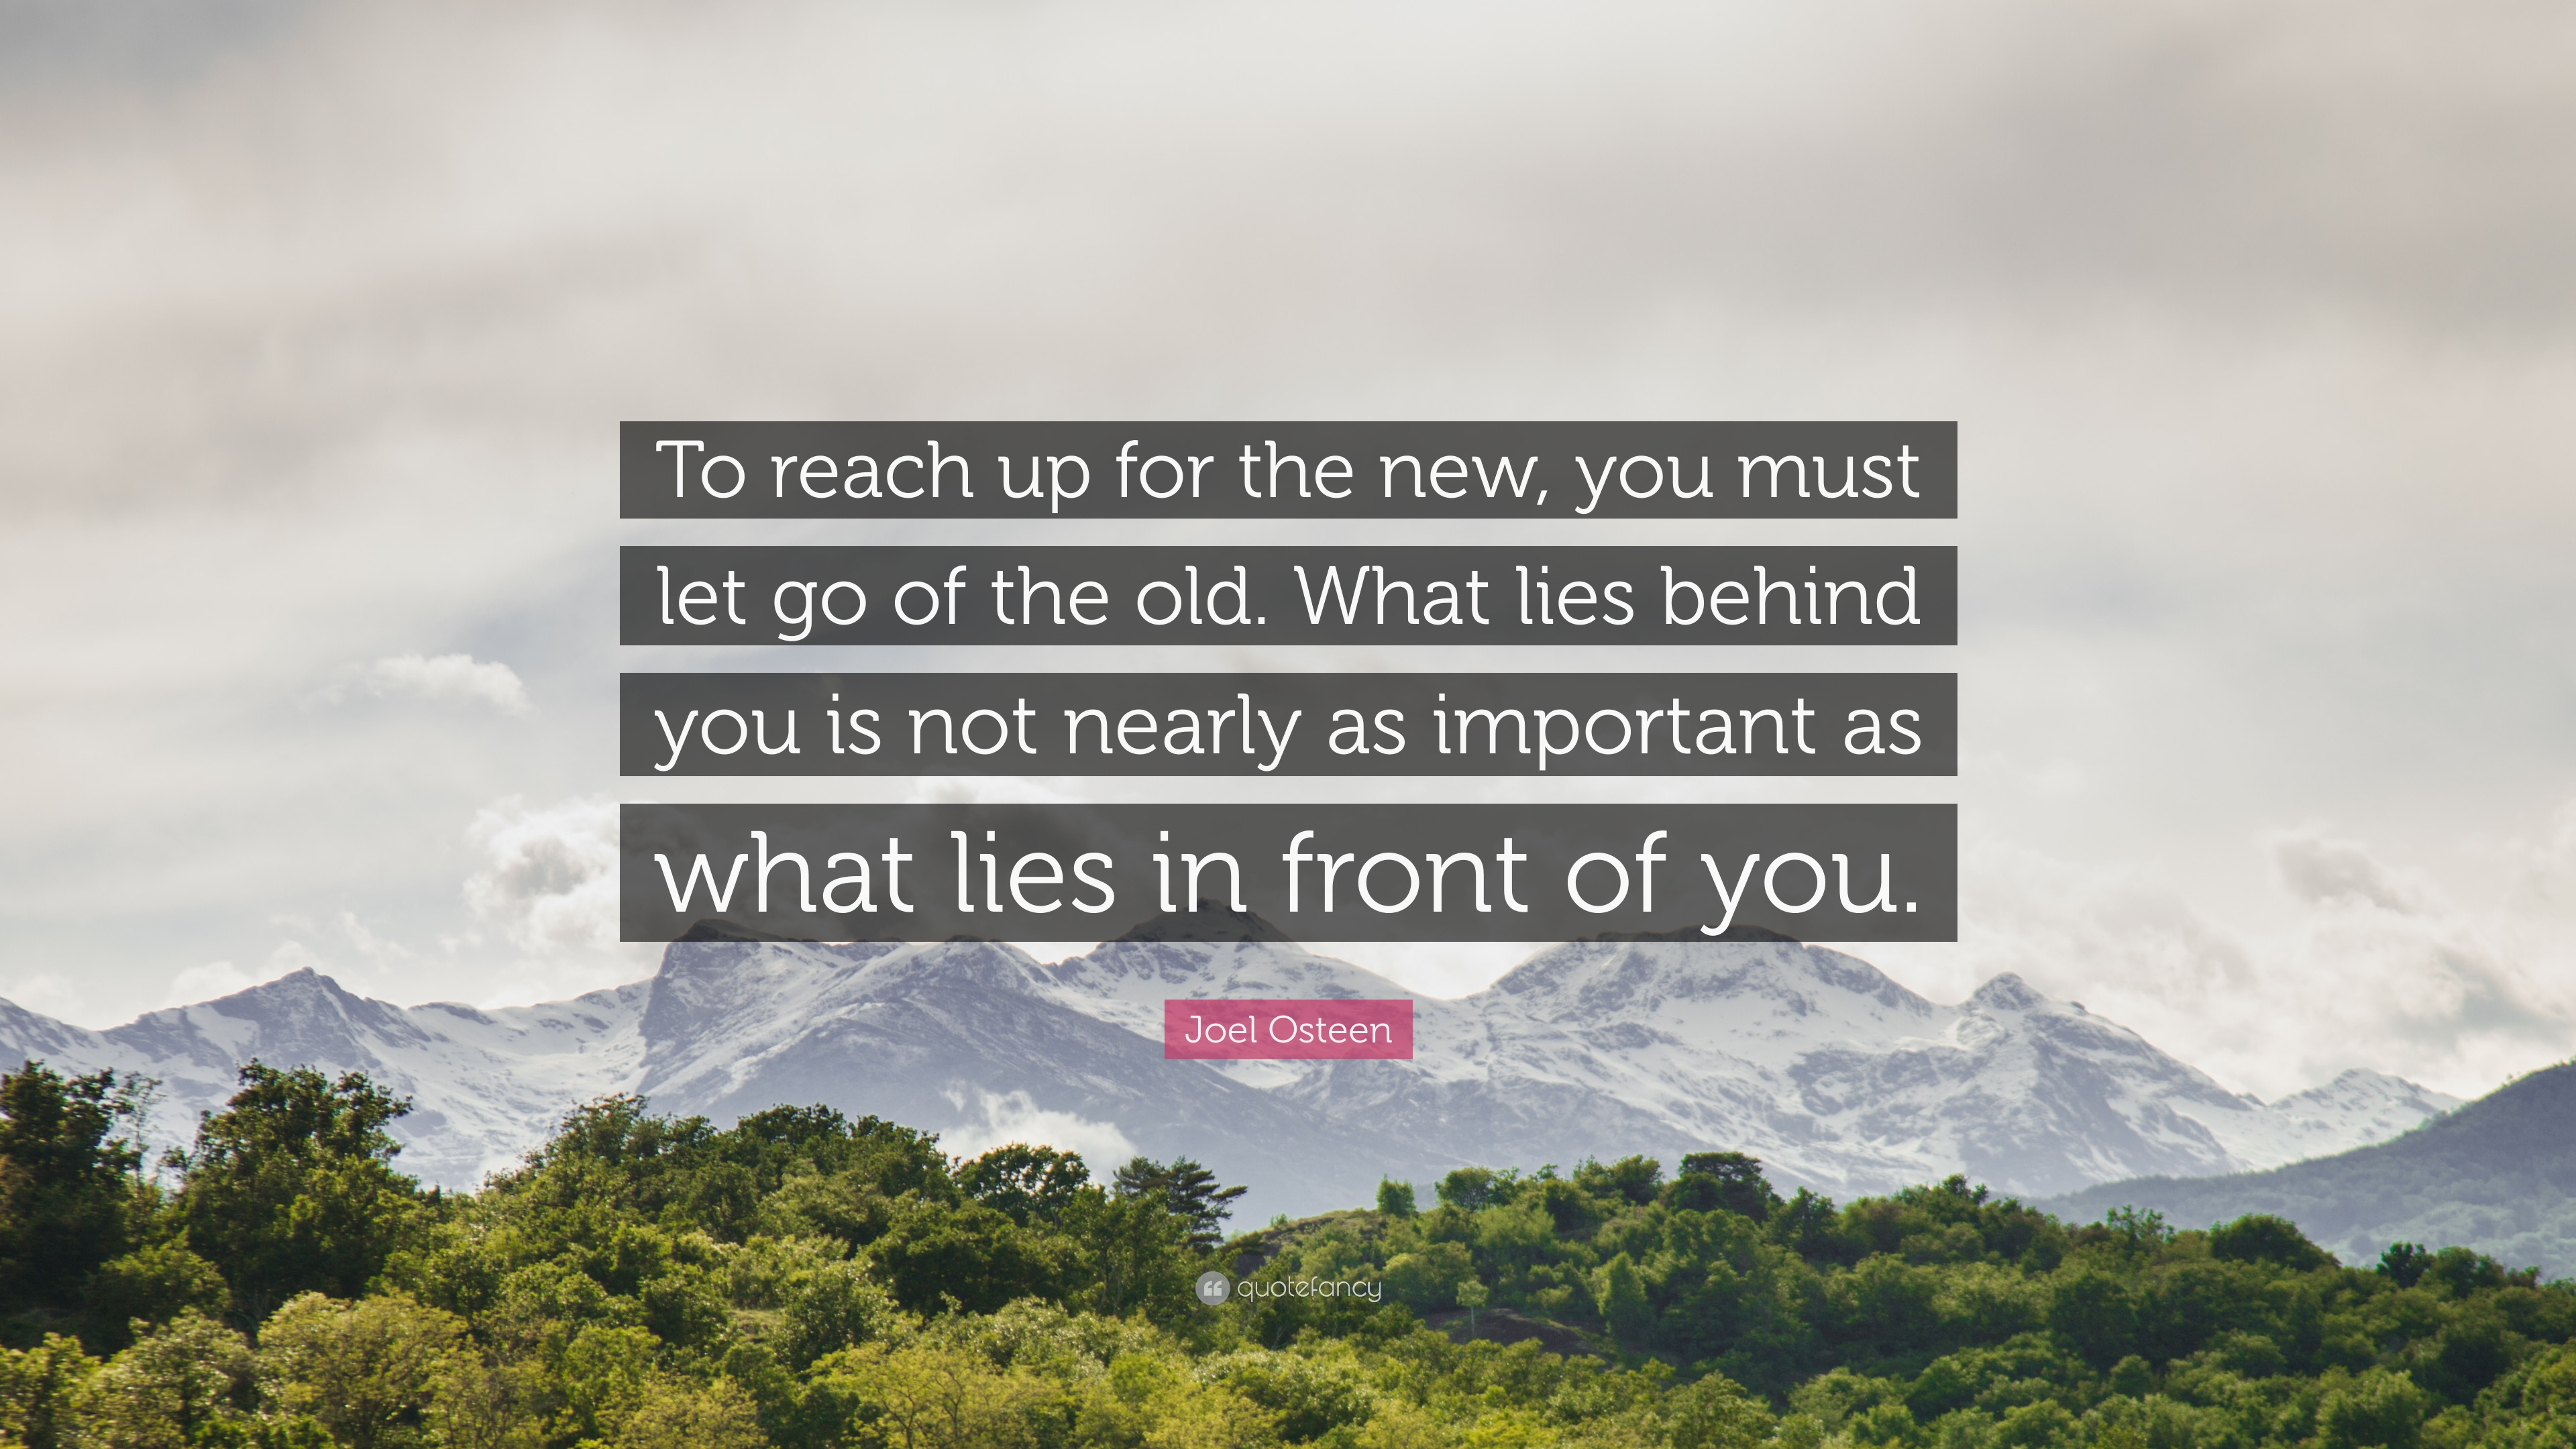 Joel Osteen Quote To Reach Up For The New You Must Let Go Of The